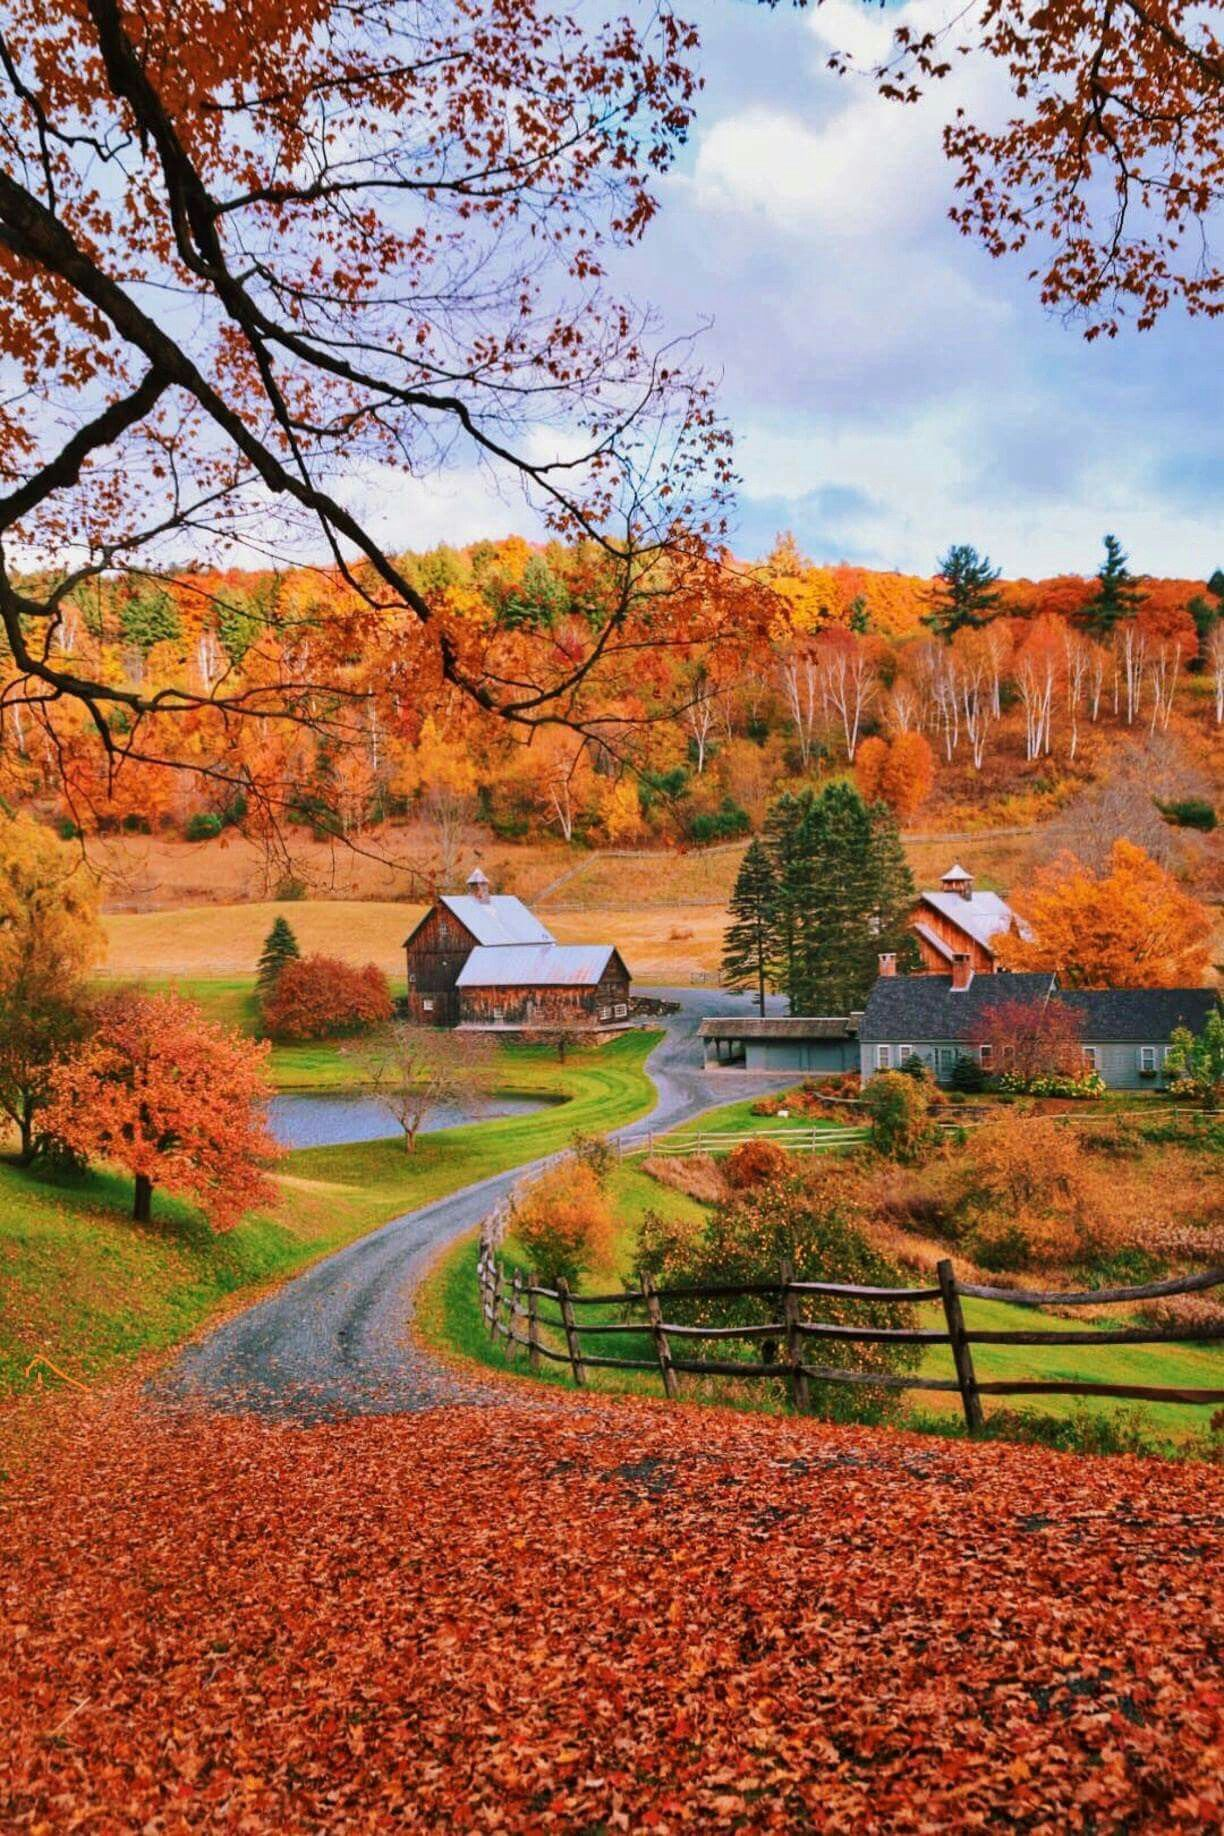 Pin By Janet Wilson On Happy Fall Y All Autumn Scenery Beautiful Landscapes Autumn Scenes